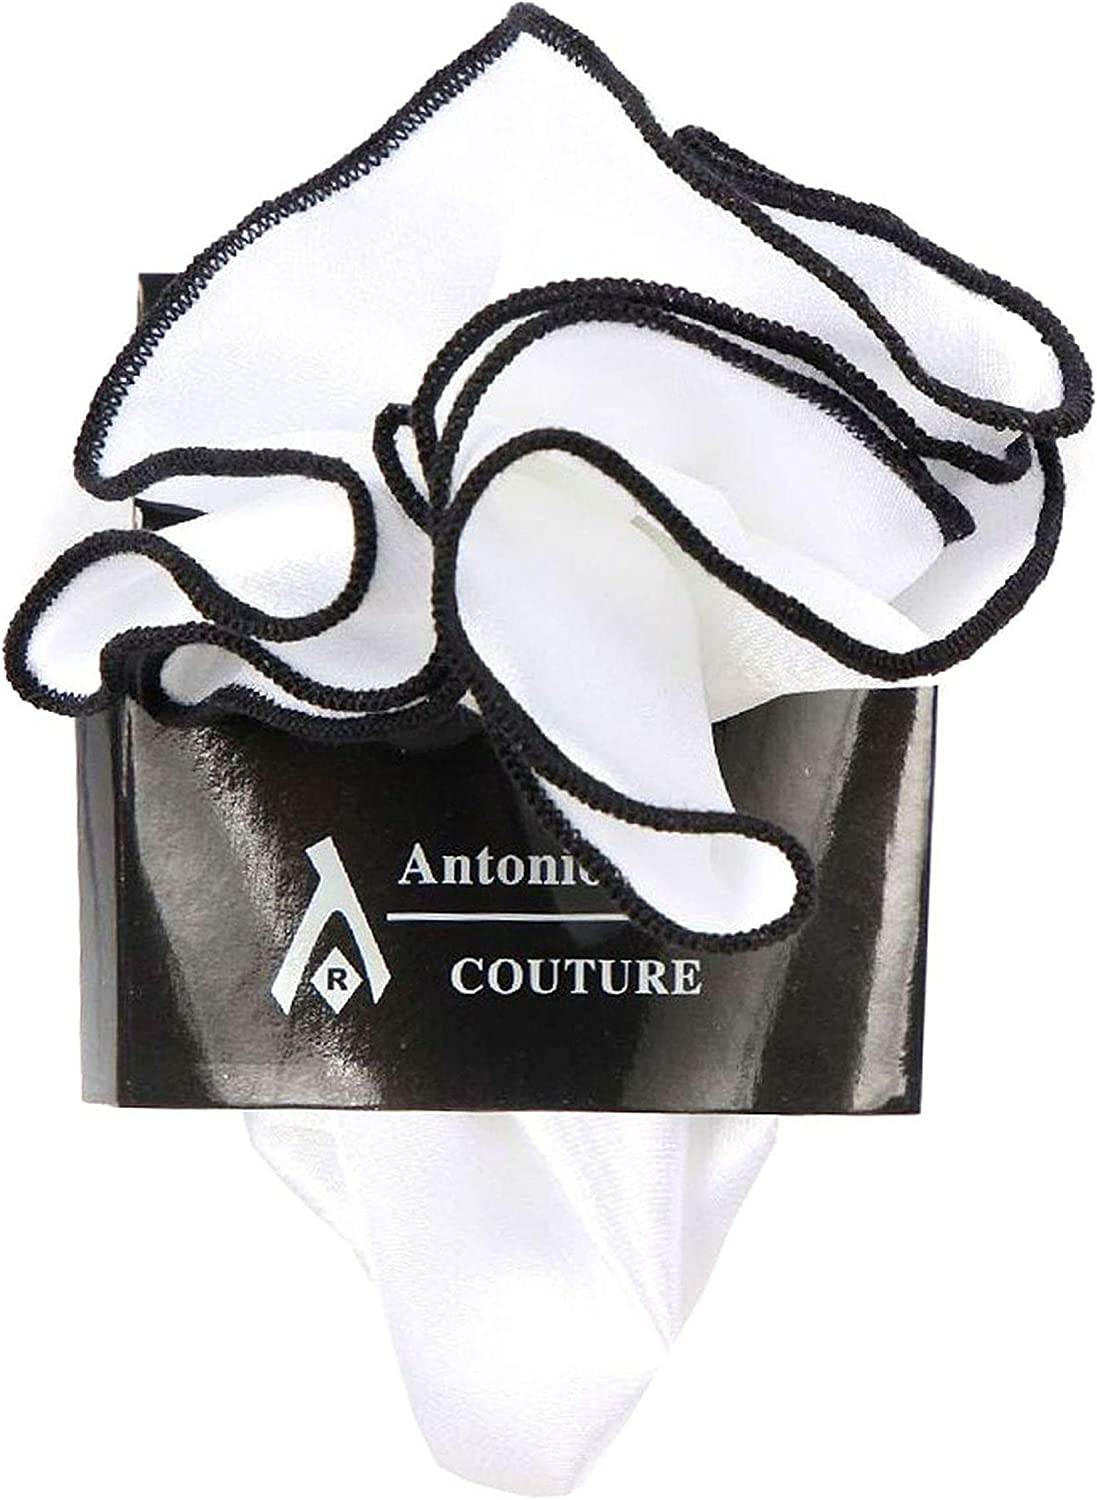 Round Pocket Square Accessory Business and Formals